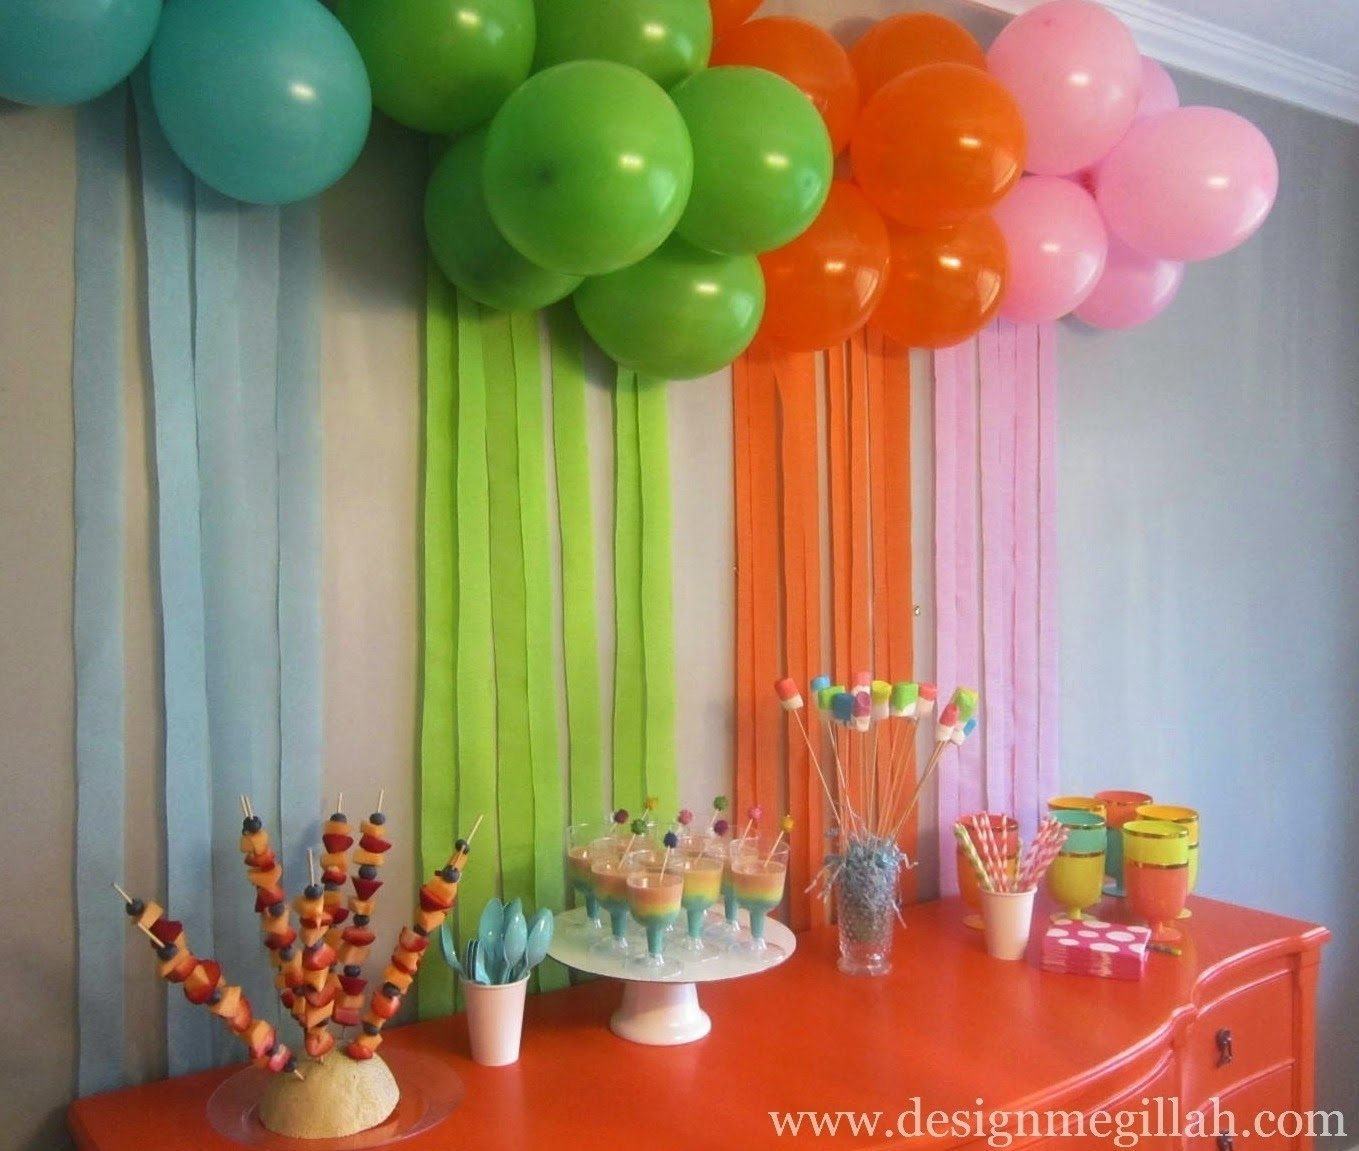 10 Unique 9 Year Old Birthday Party Ideas strikingly 9 year old boy birthday party ideas at home home designs 2020